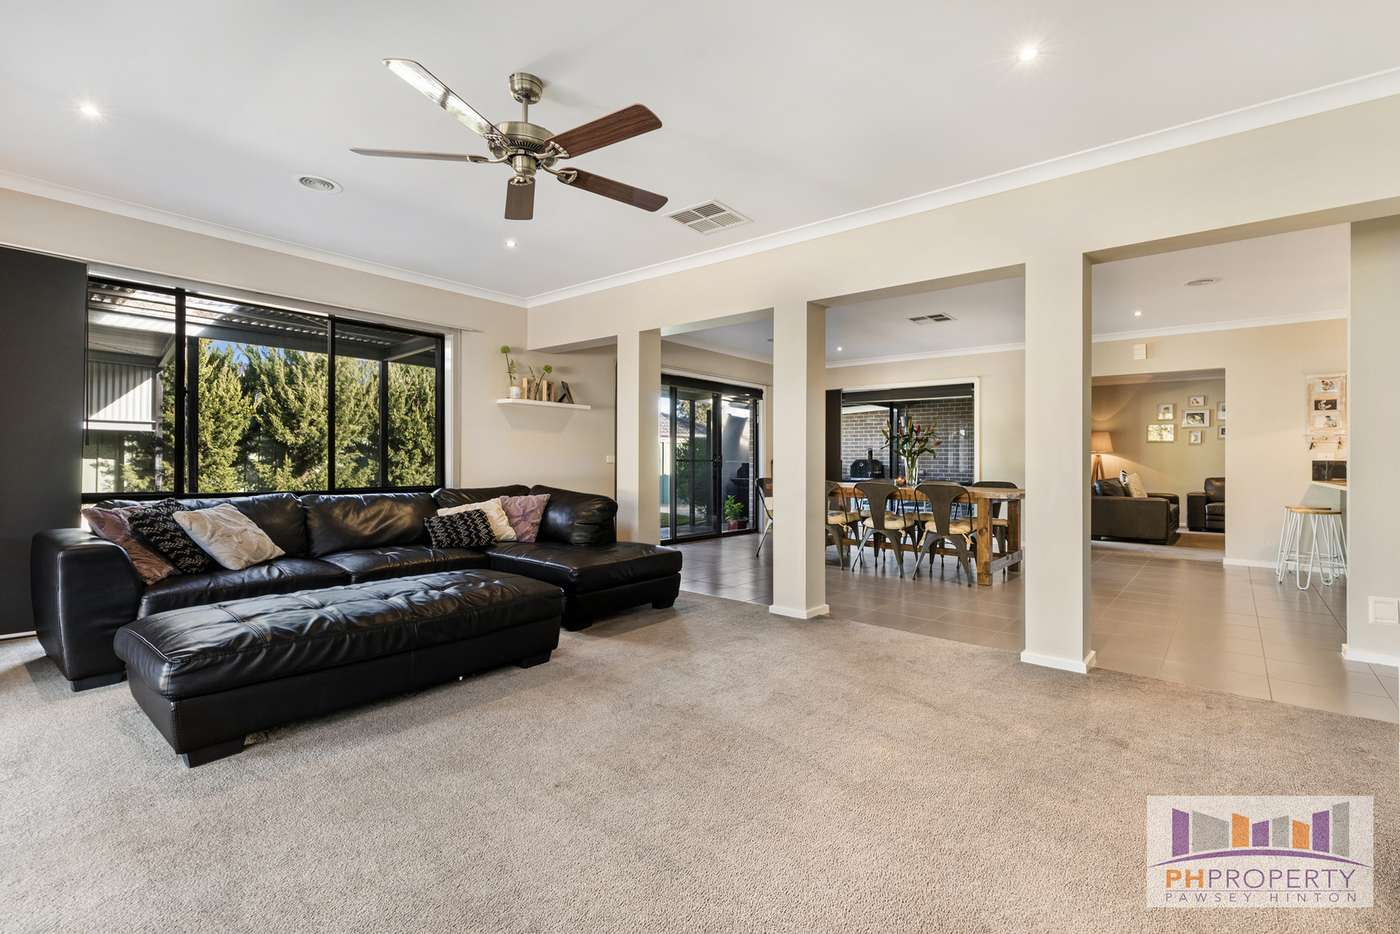 Fifth view of Homely house listing, 4 Anteah Road, Maiden Gully VIC 3551